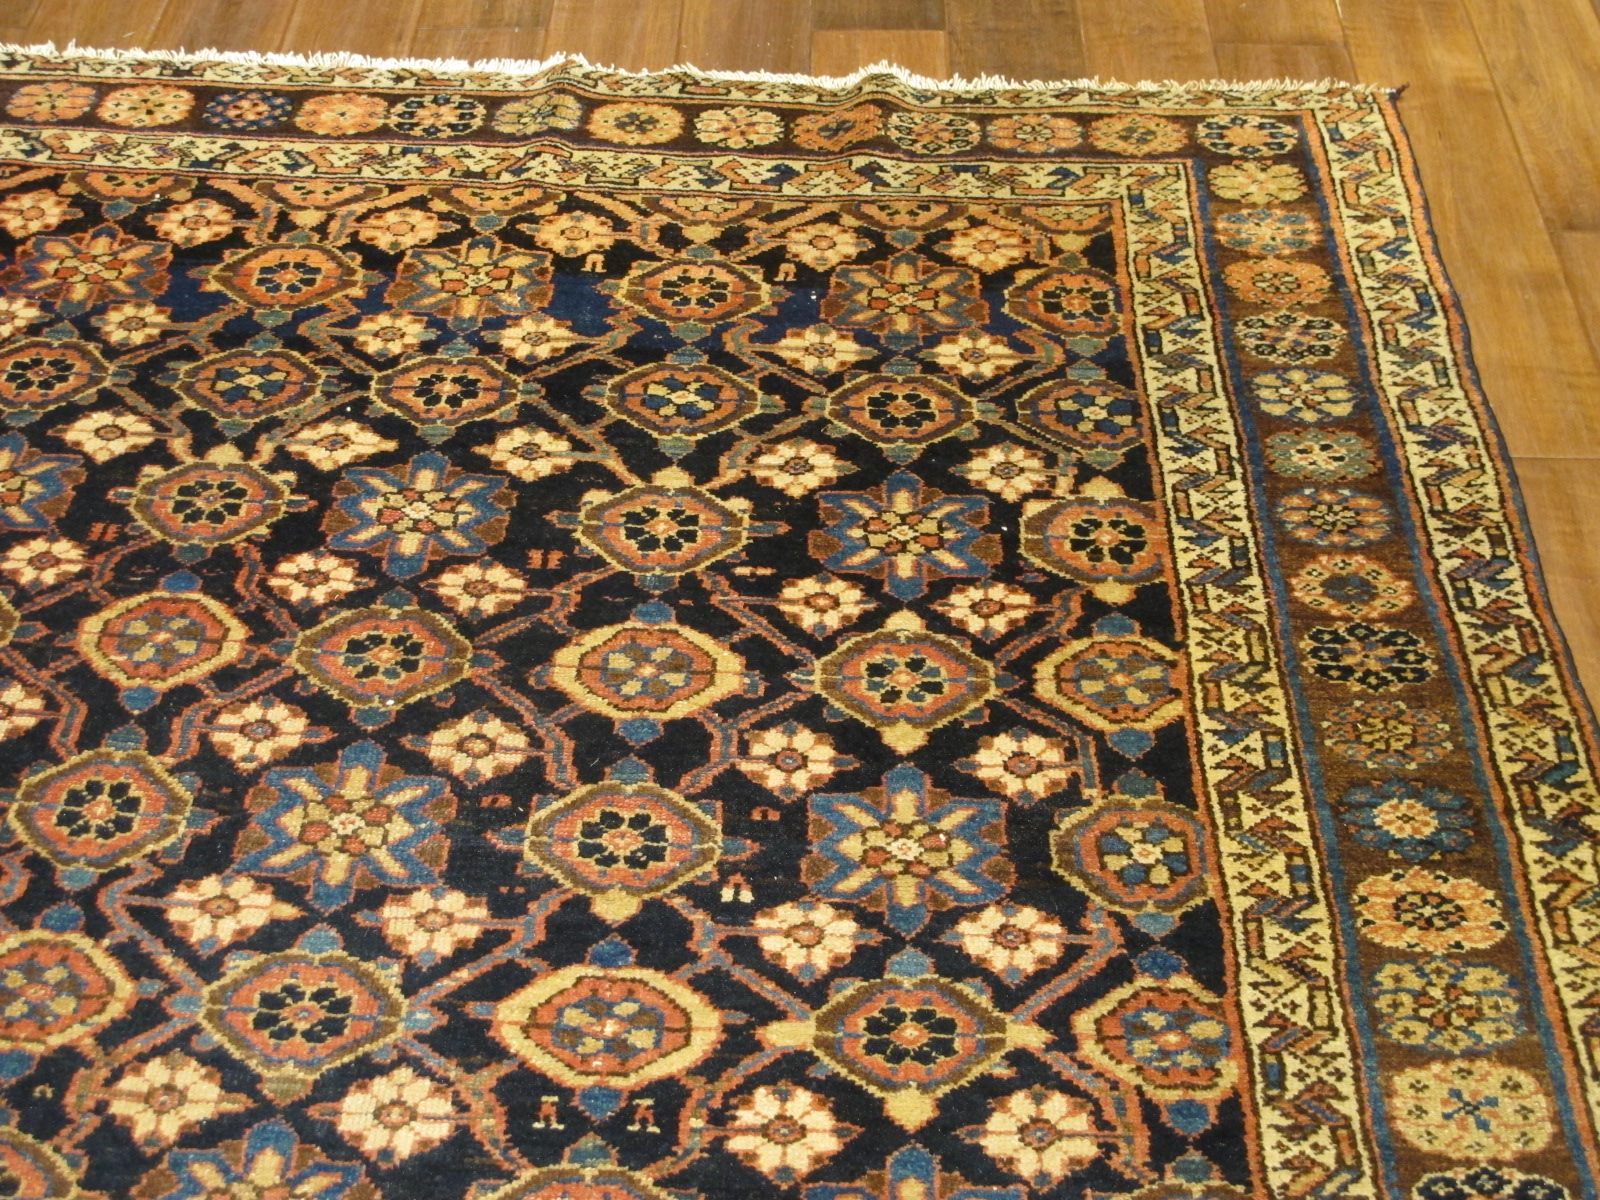 22148 Antique Persian Veramin gallery rug 5,5 x 11,2 (3)